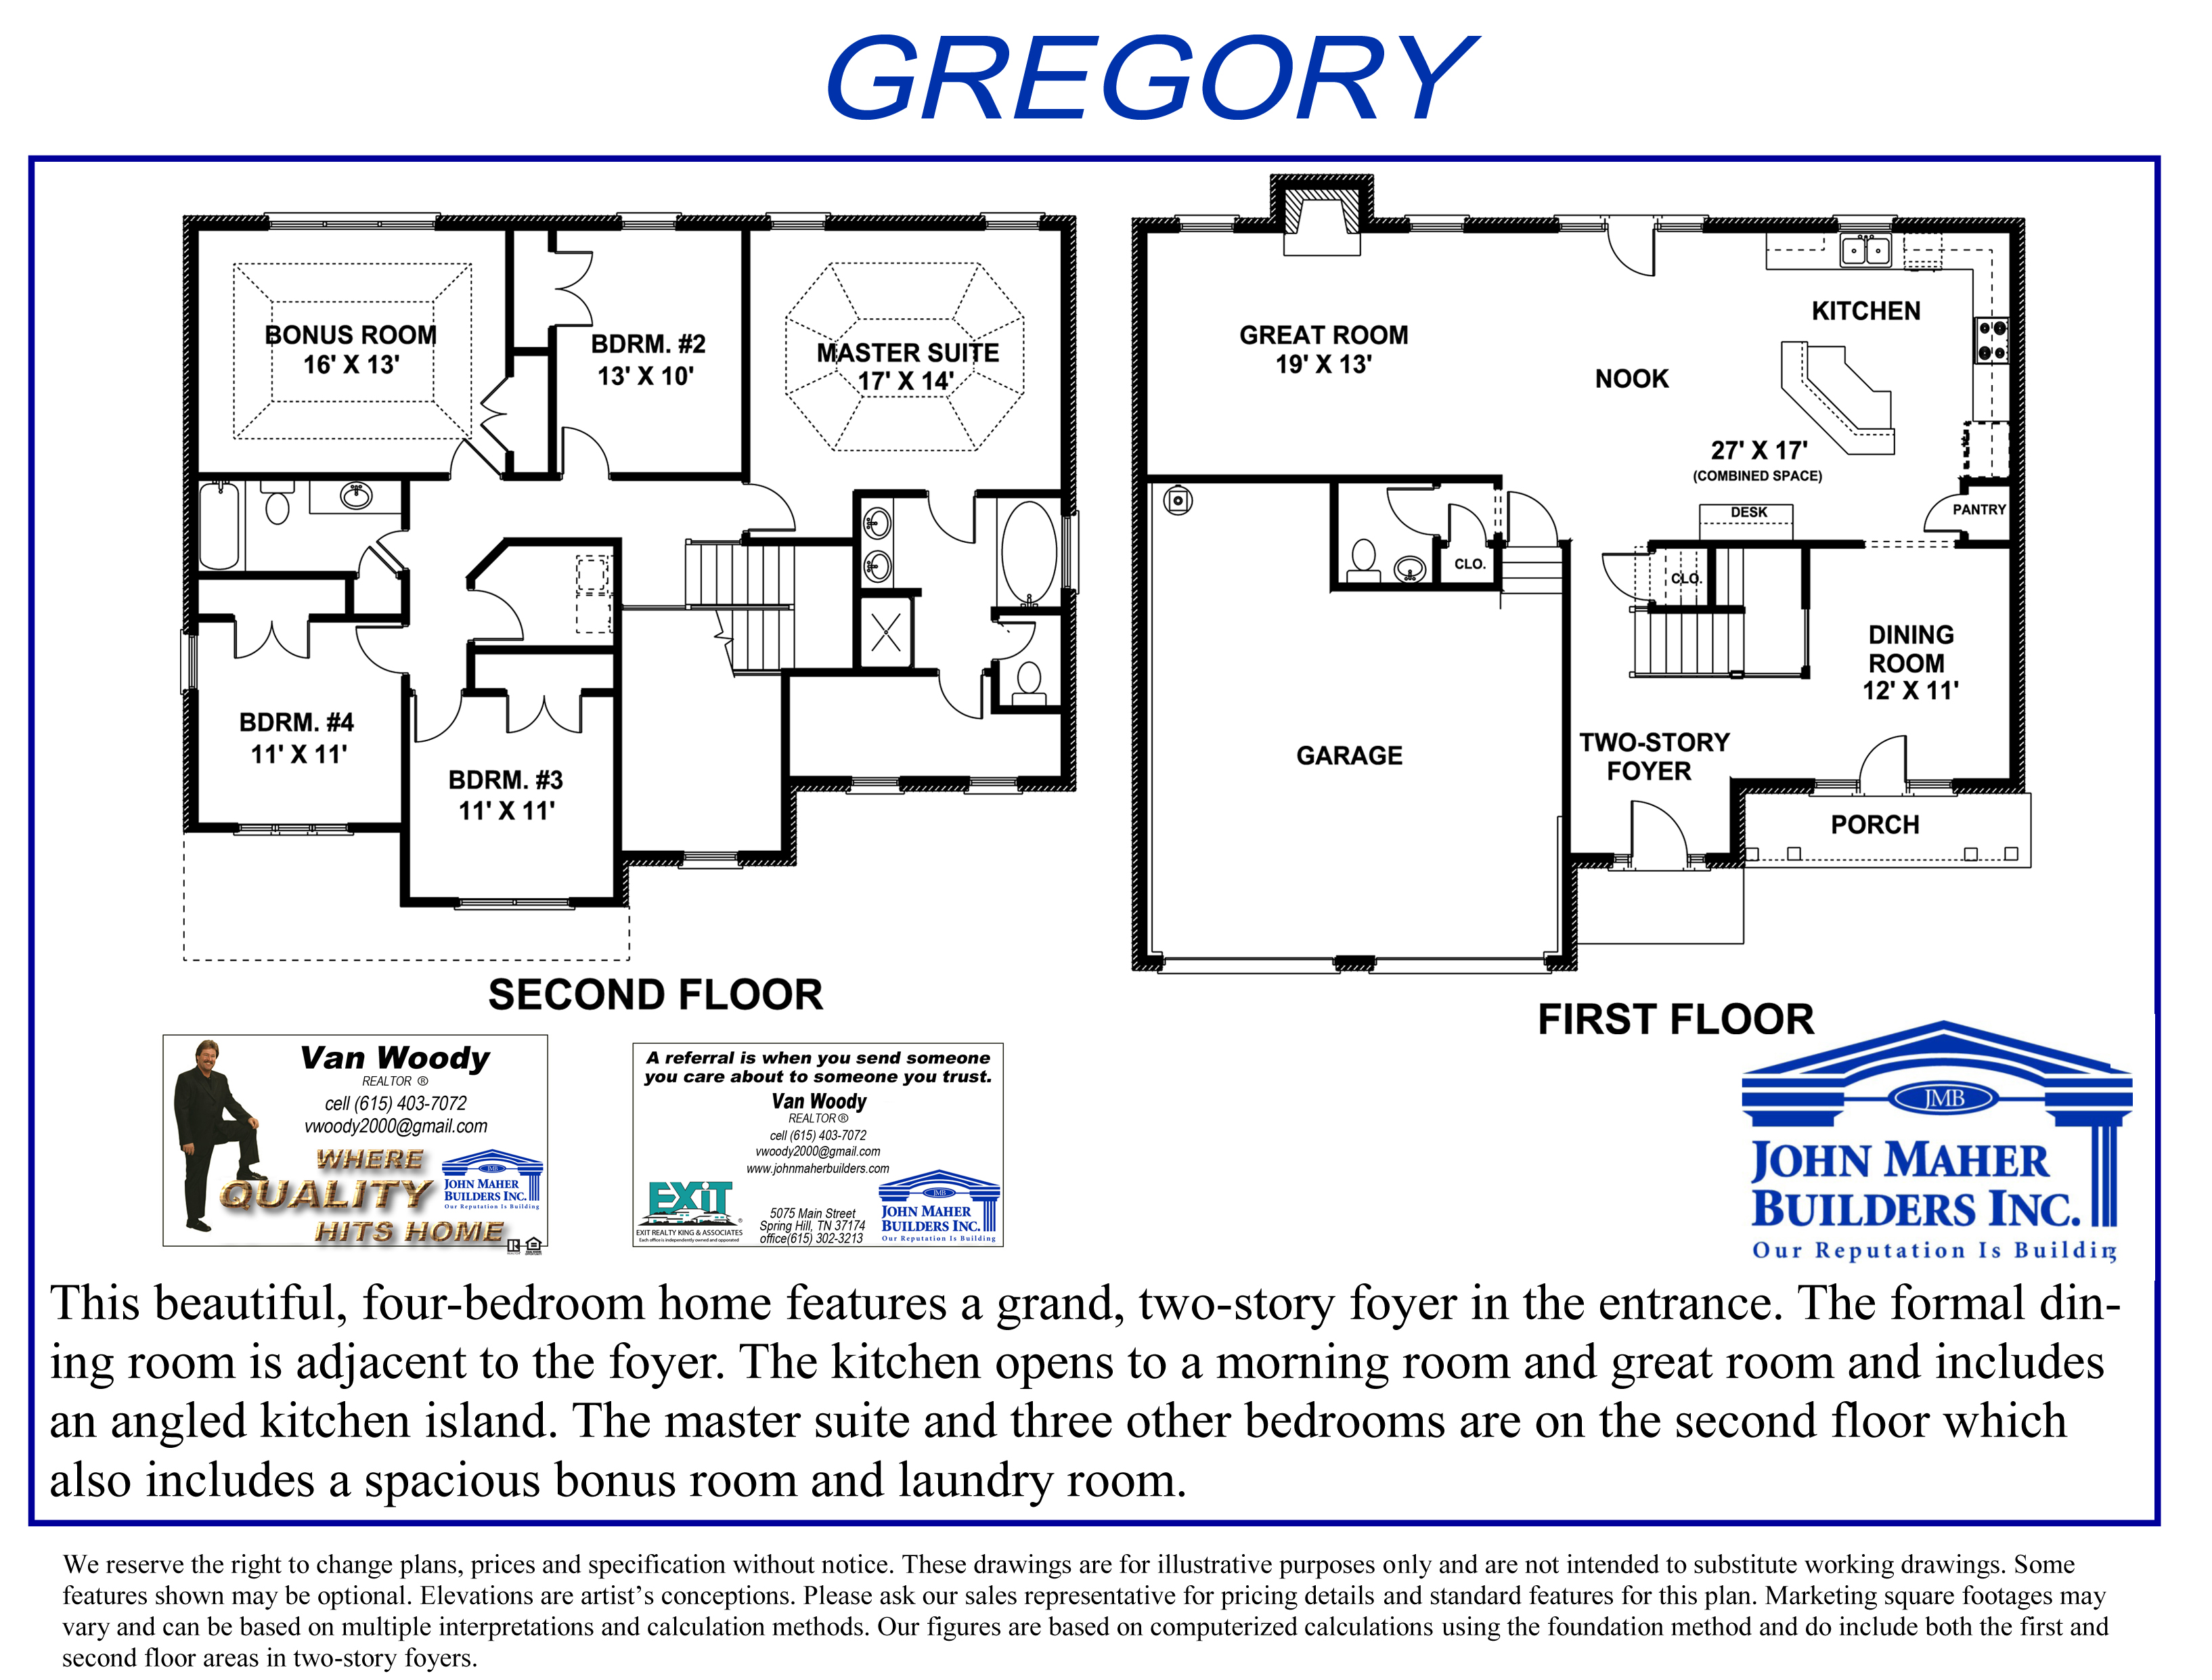 The Gregory Plan in Wades Grove